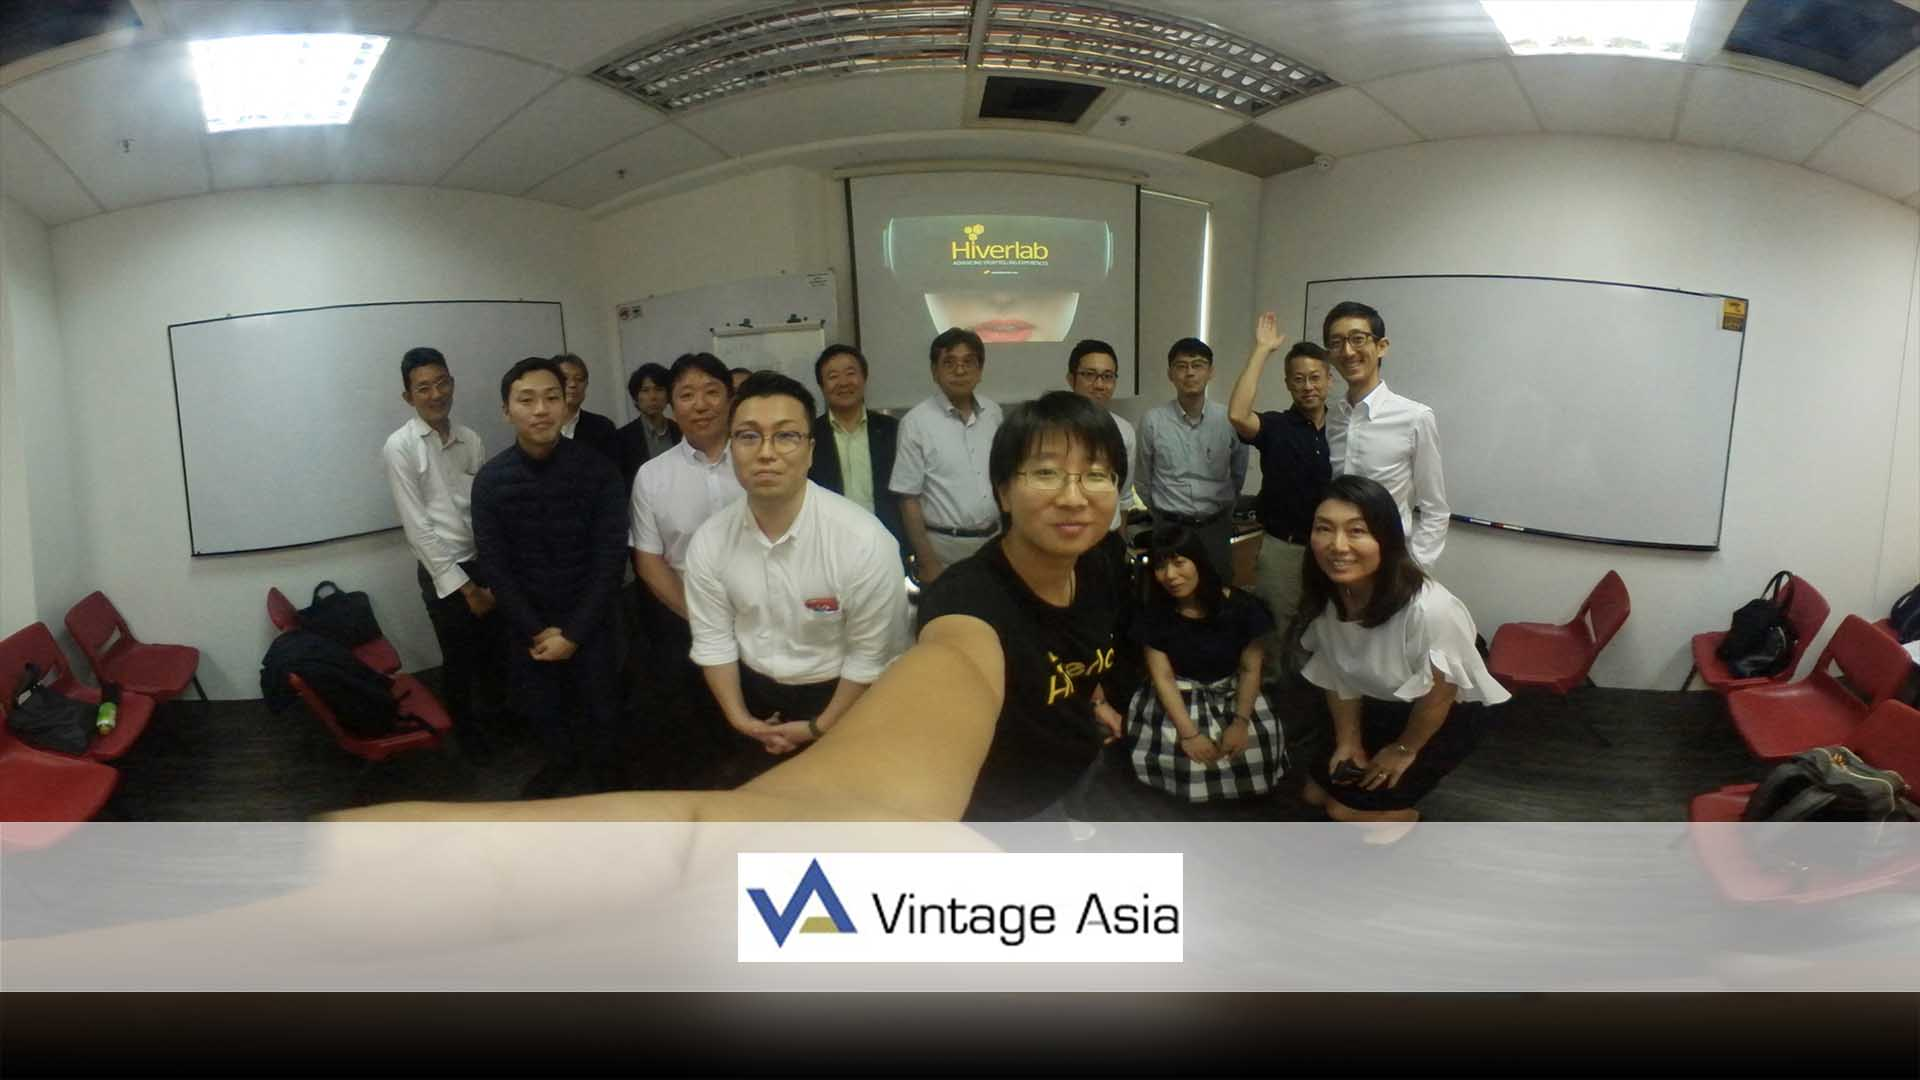 AR VR Workshop for Business Groups from Japan